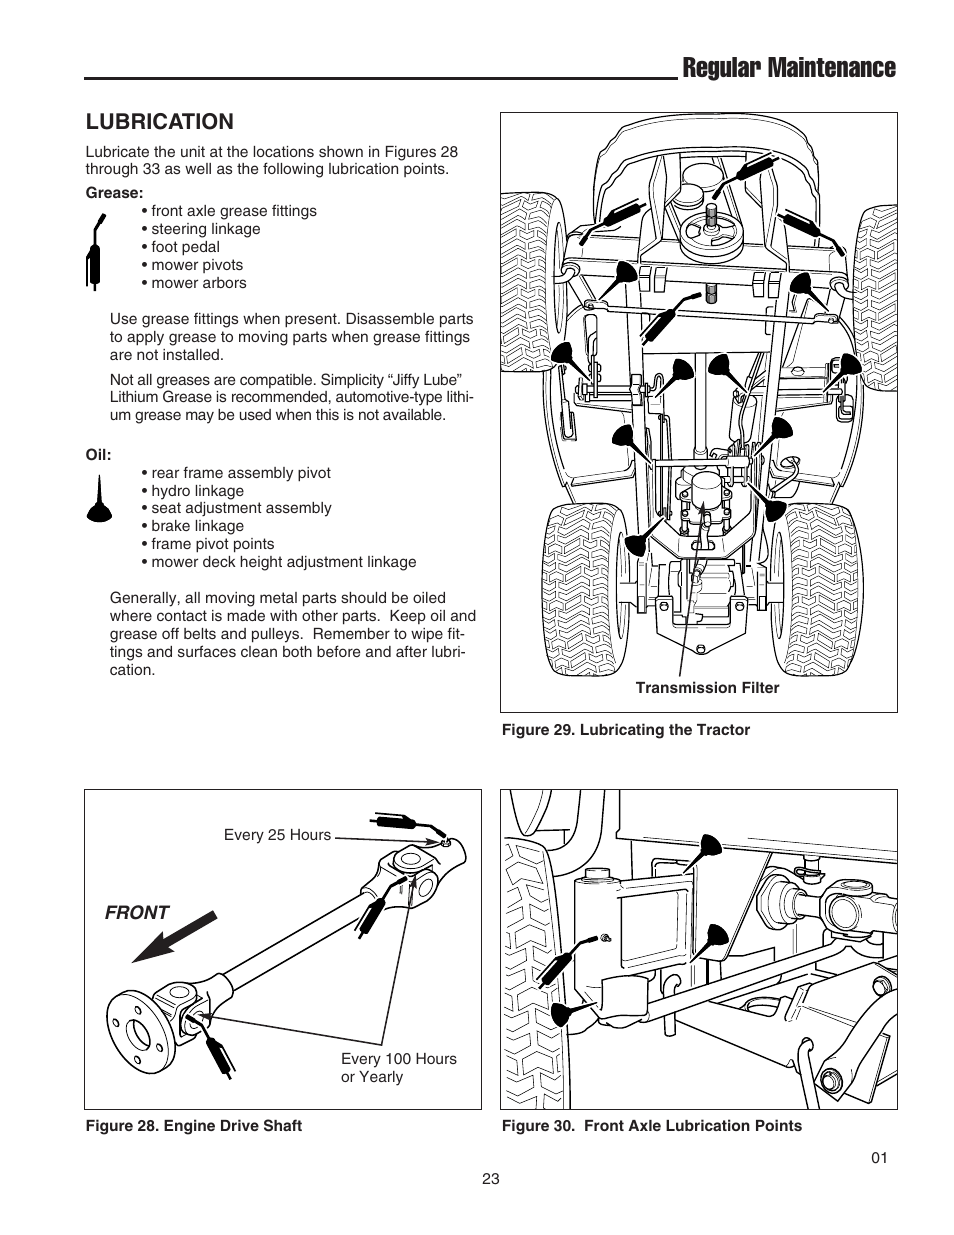 Regular maintenance, Lubrication | Simplicity 1693130 User Manual